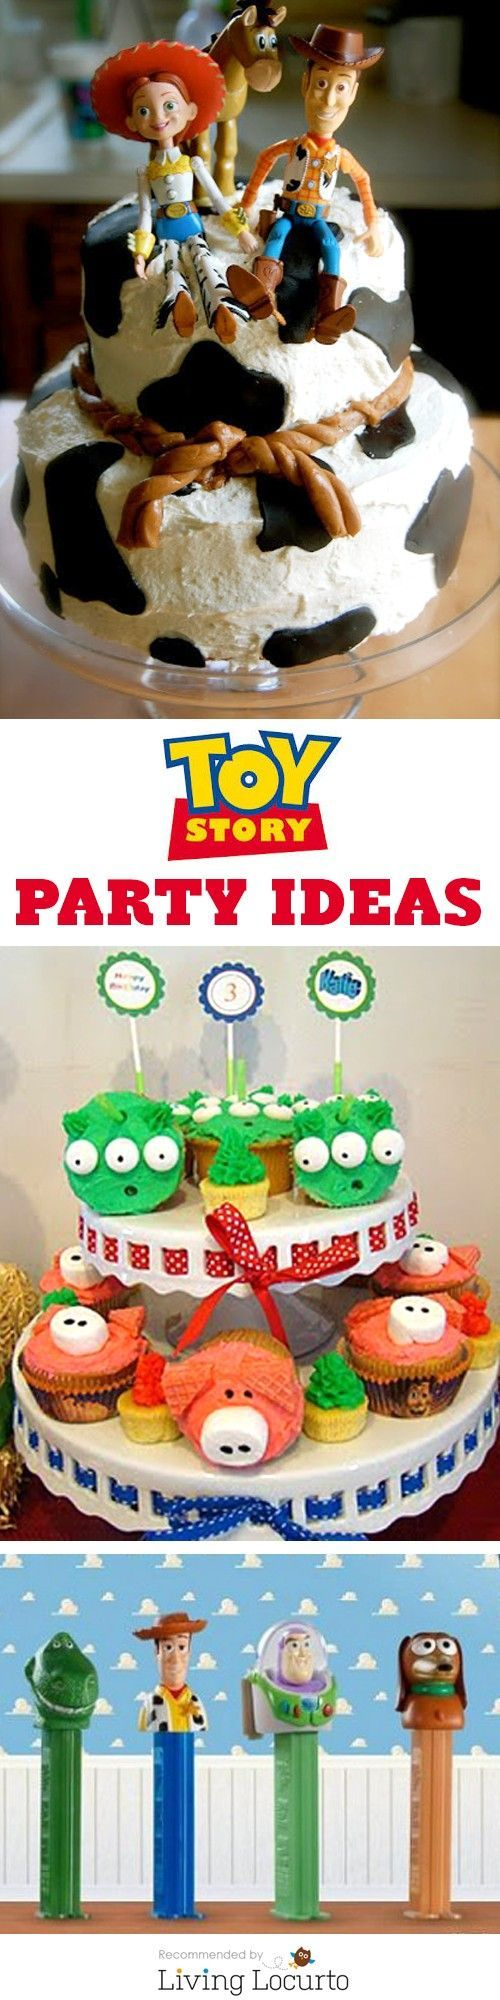 Toy Story Birthday Party ideas! Cute Woody, Buzz Light Year and the gang themed cakes, cookies, cupcakes, free party printables, party favors, crafts and kid games! LivingLocurto.com #themedcakes